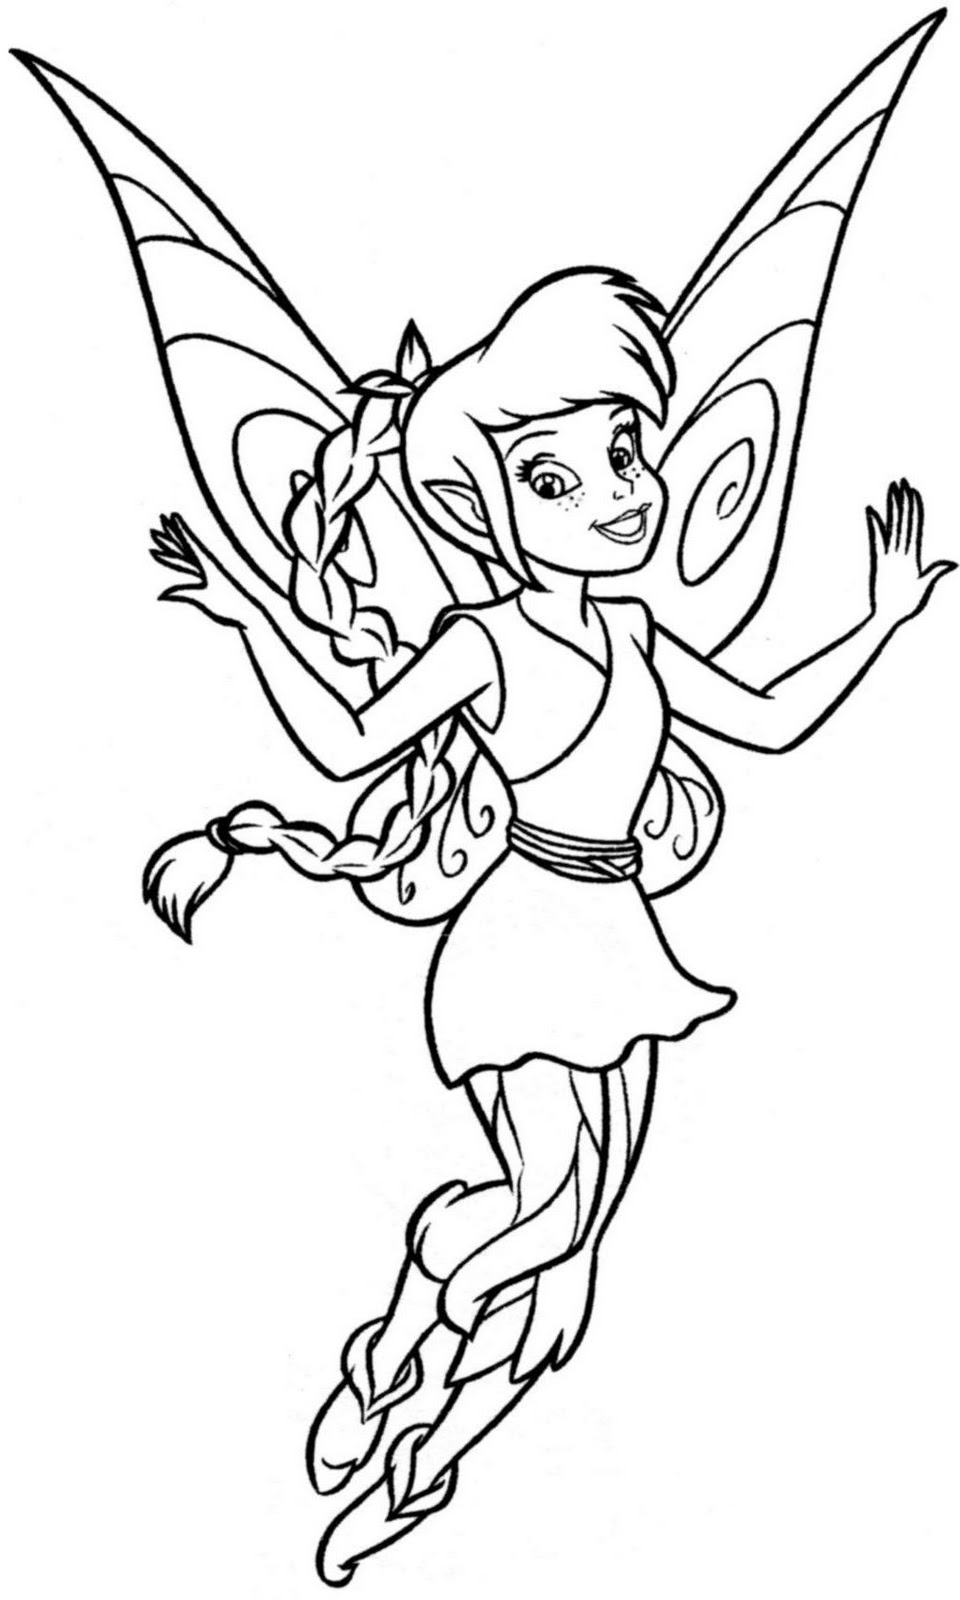 disney fawn coloring pages - photo#21